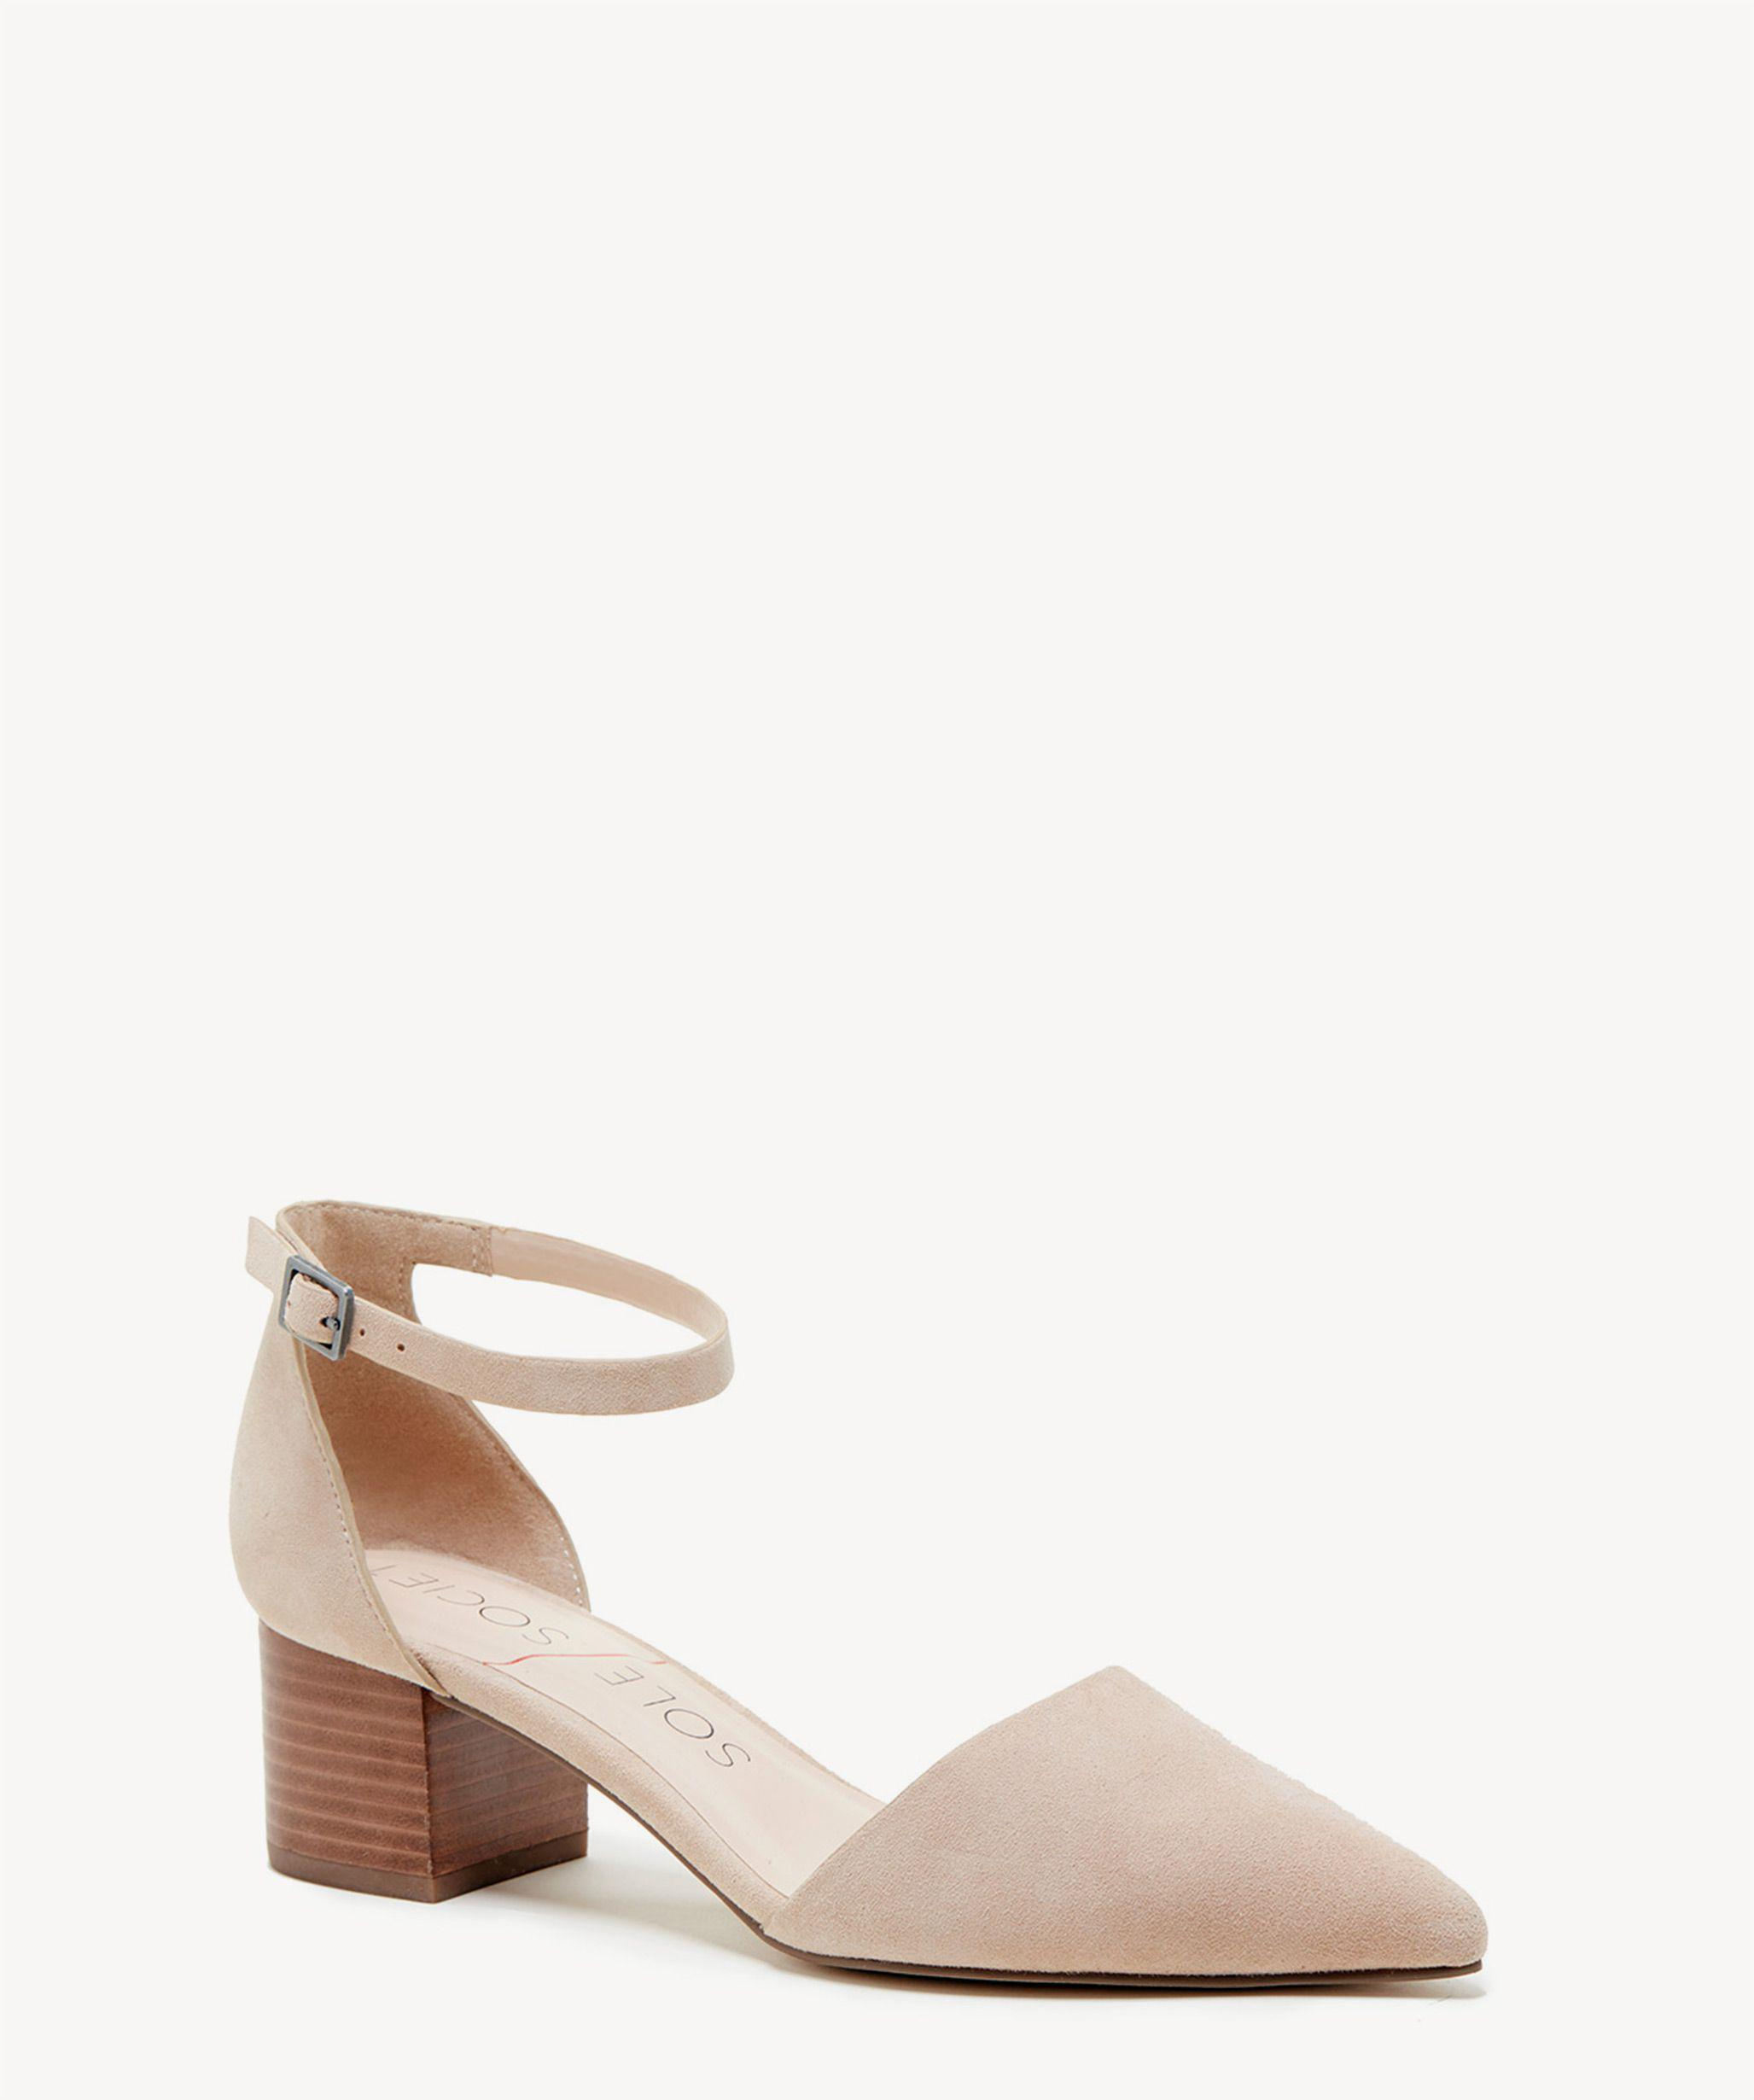 bd151d91ccb Lyst - Sole Society Katarina Two Piece Block Heel Pump in Natural